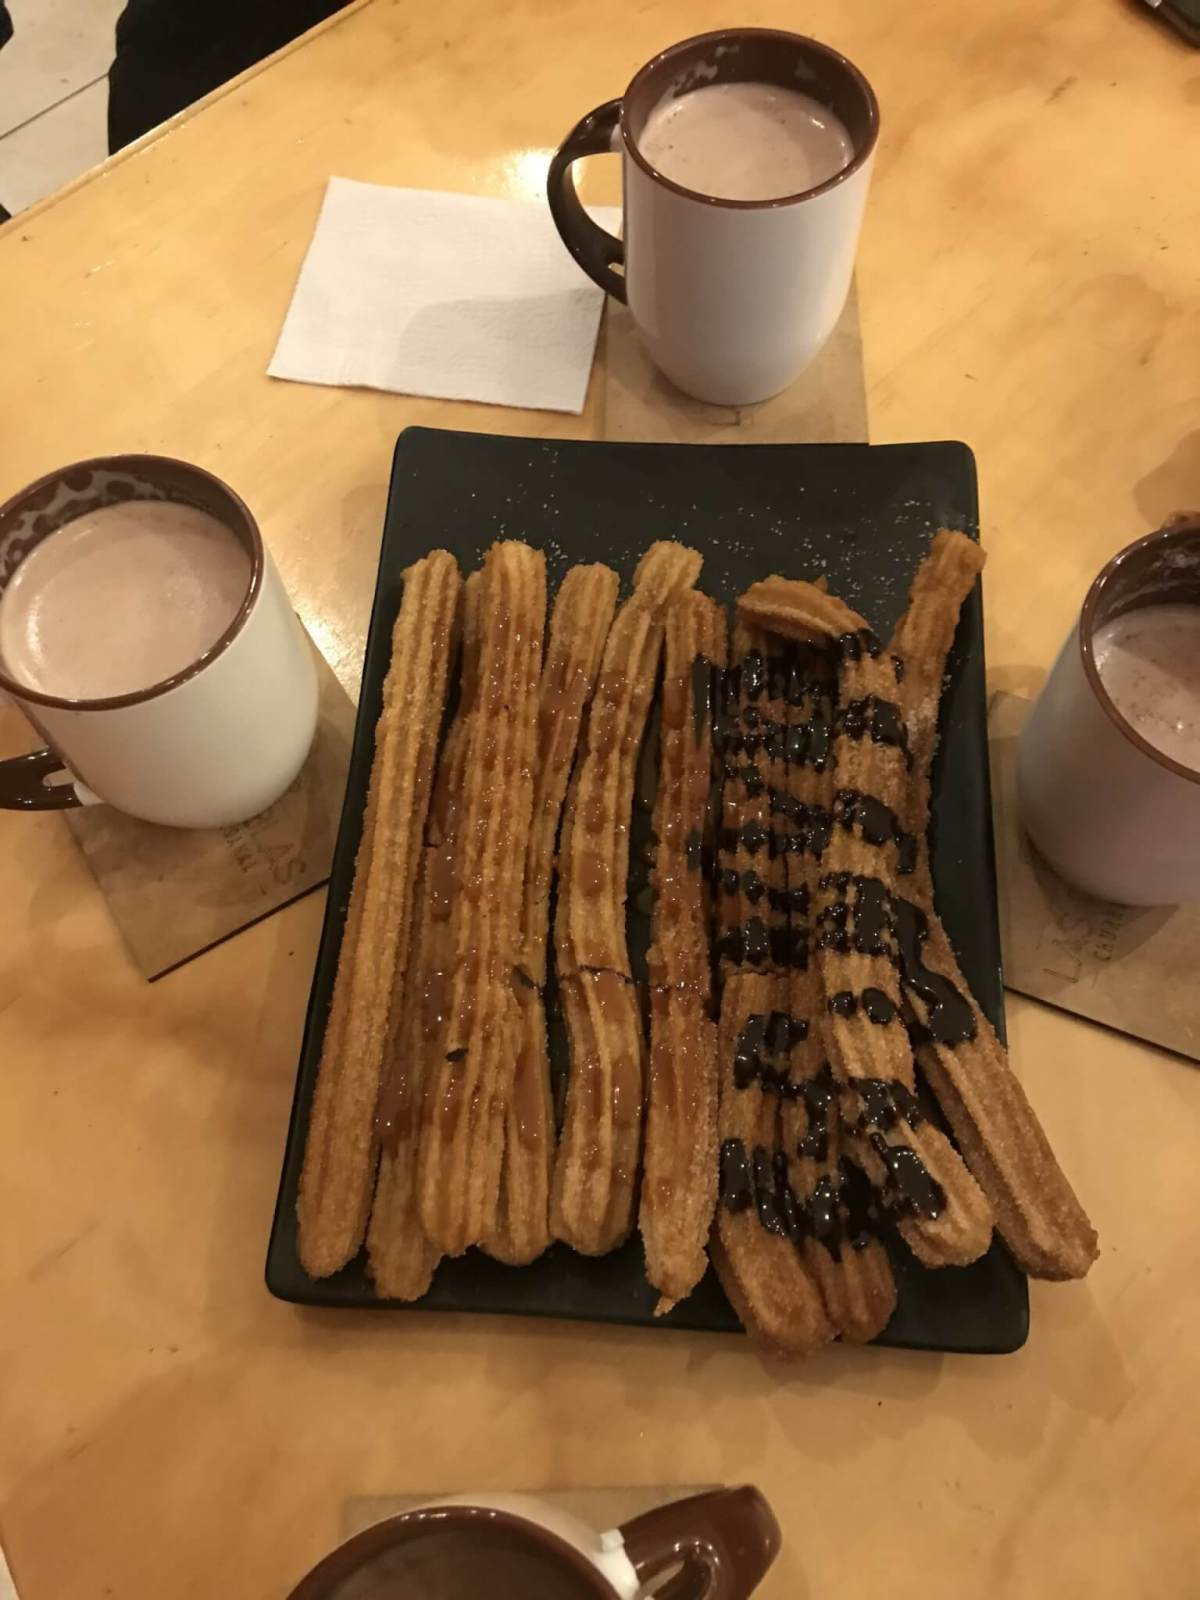 Churros at Churrería Artesenal Las Ramblas in Morelia